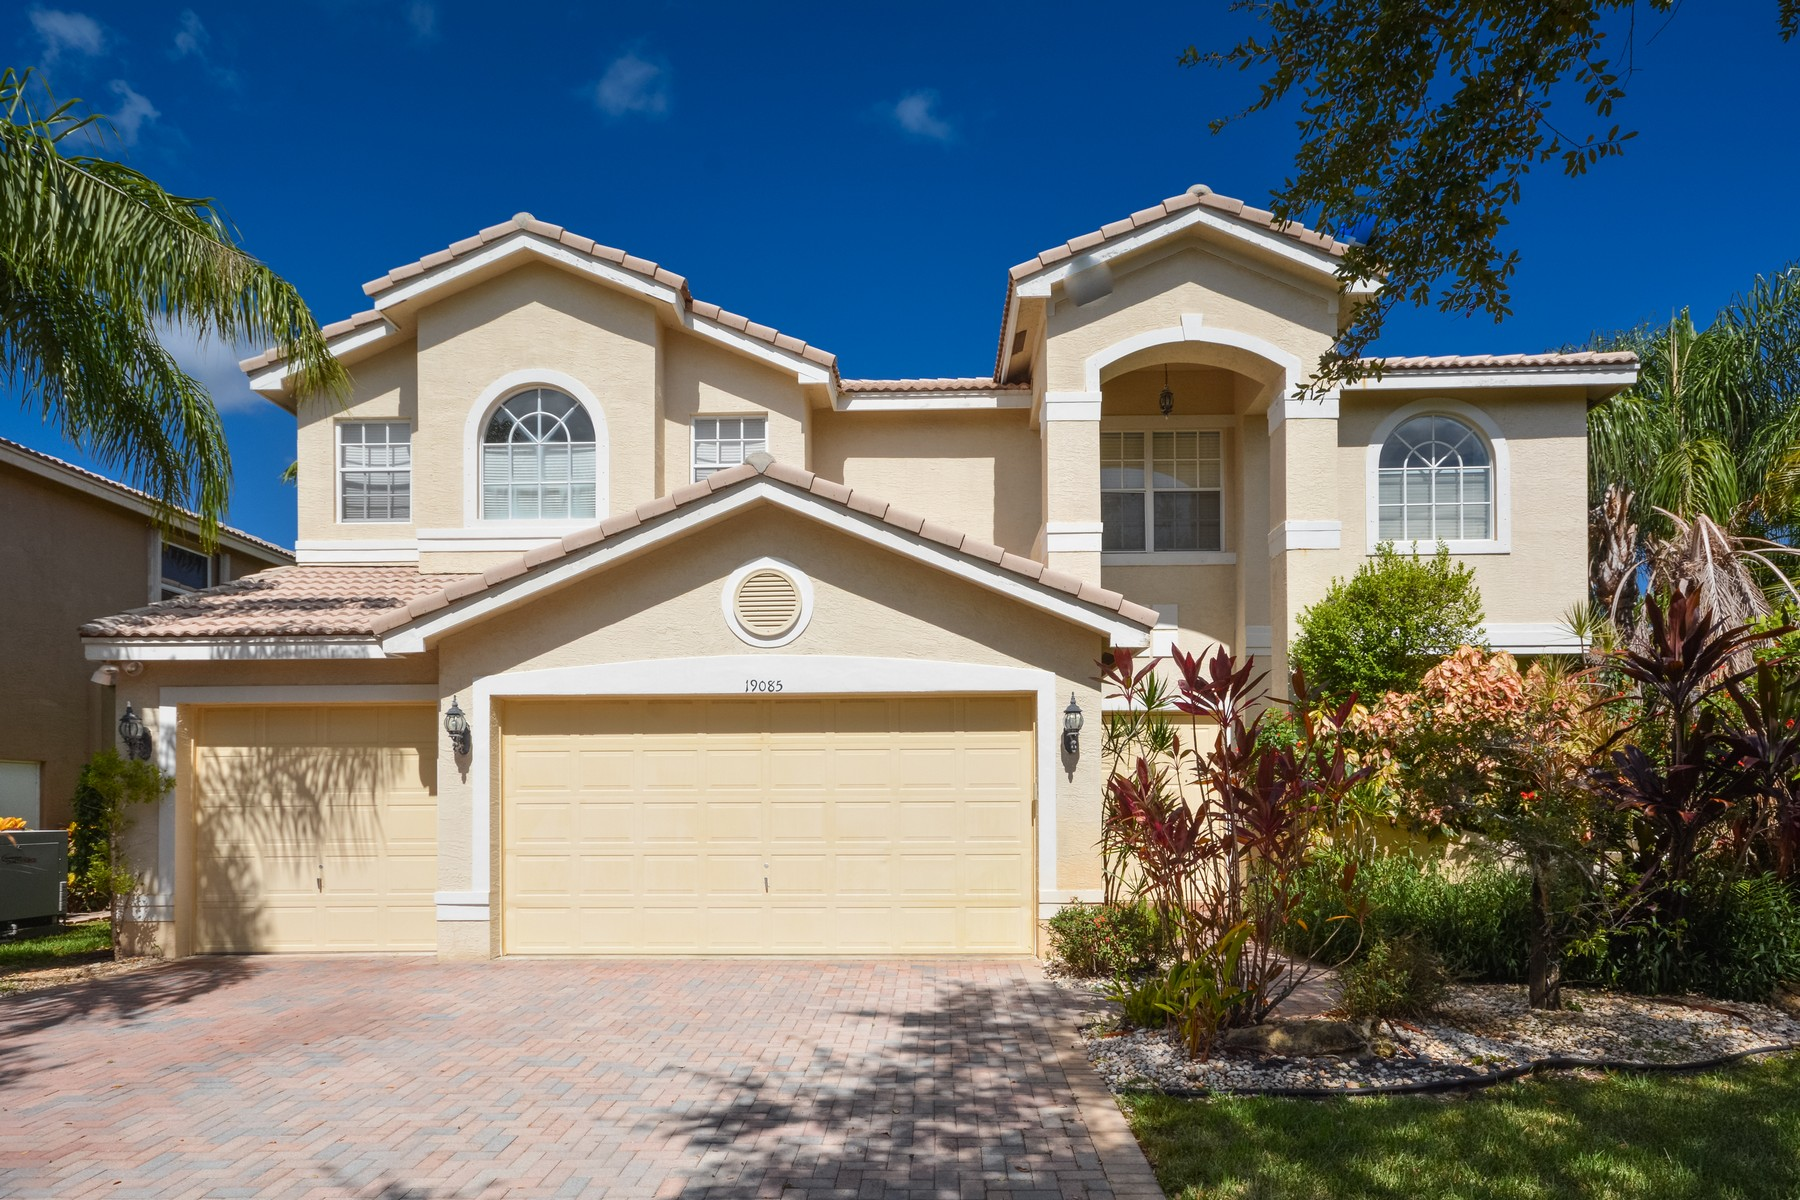 Single Family Home for Sale at 19085 Streamside Ct , Boca Raton, FL 33498 19085 Streamside Ct Boca Raton, Florida, 33498 United States